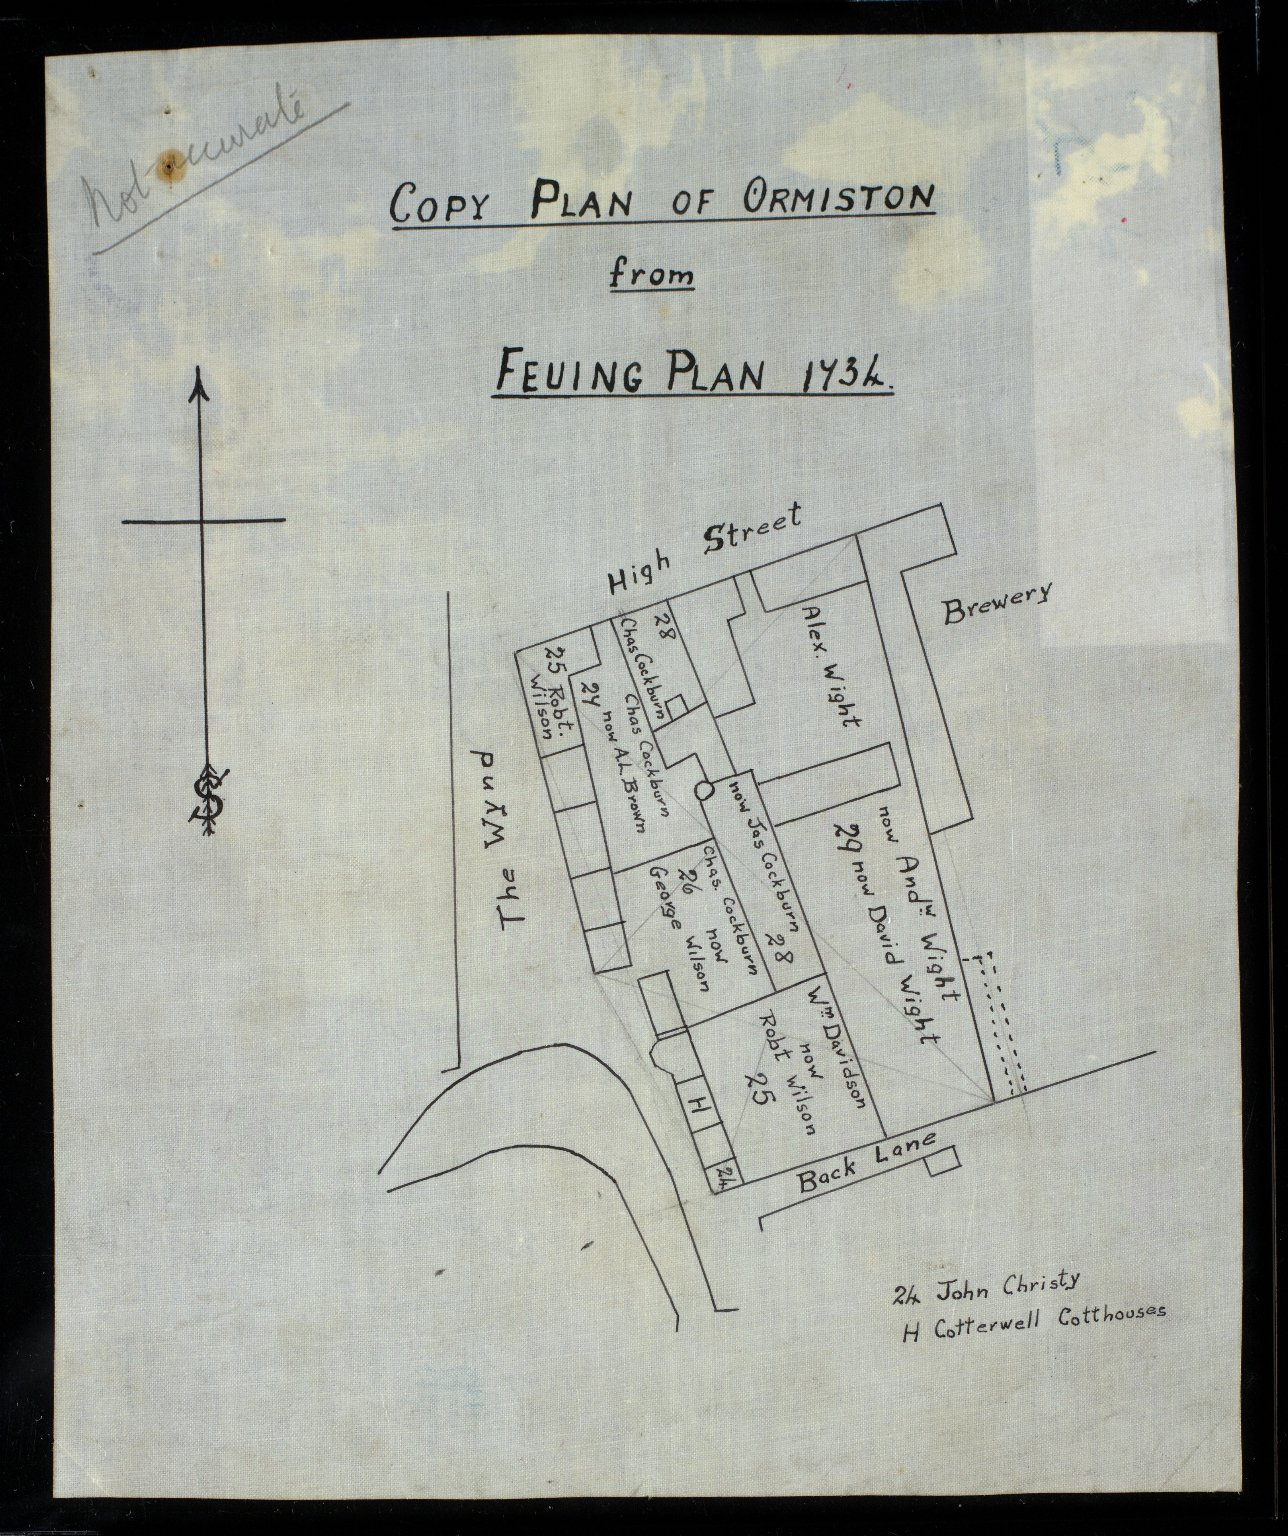 Copy Plan of Ormiston from Feuing Plan of 1734 [2 of 2]